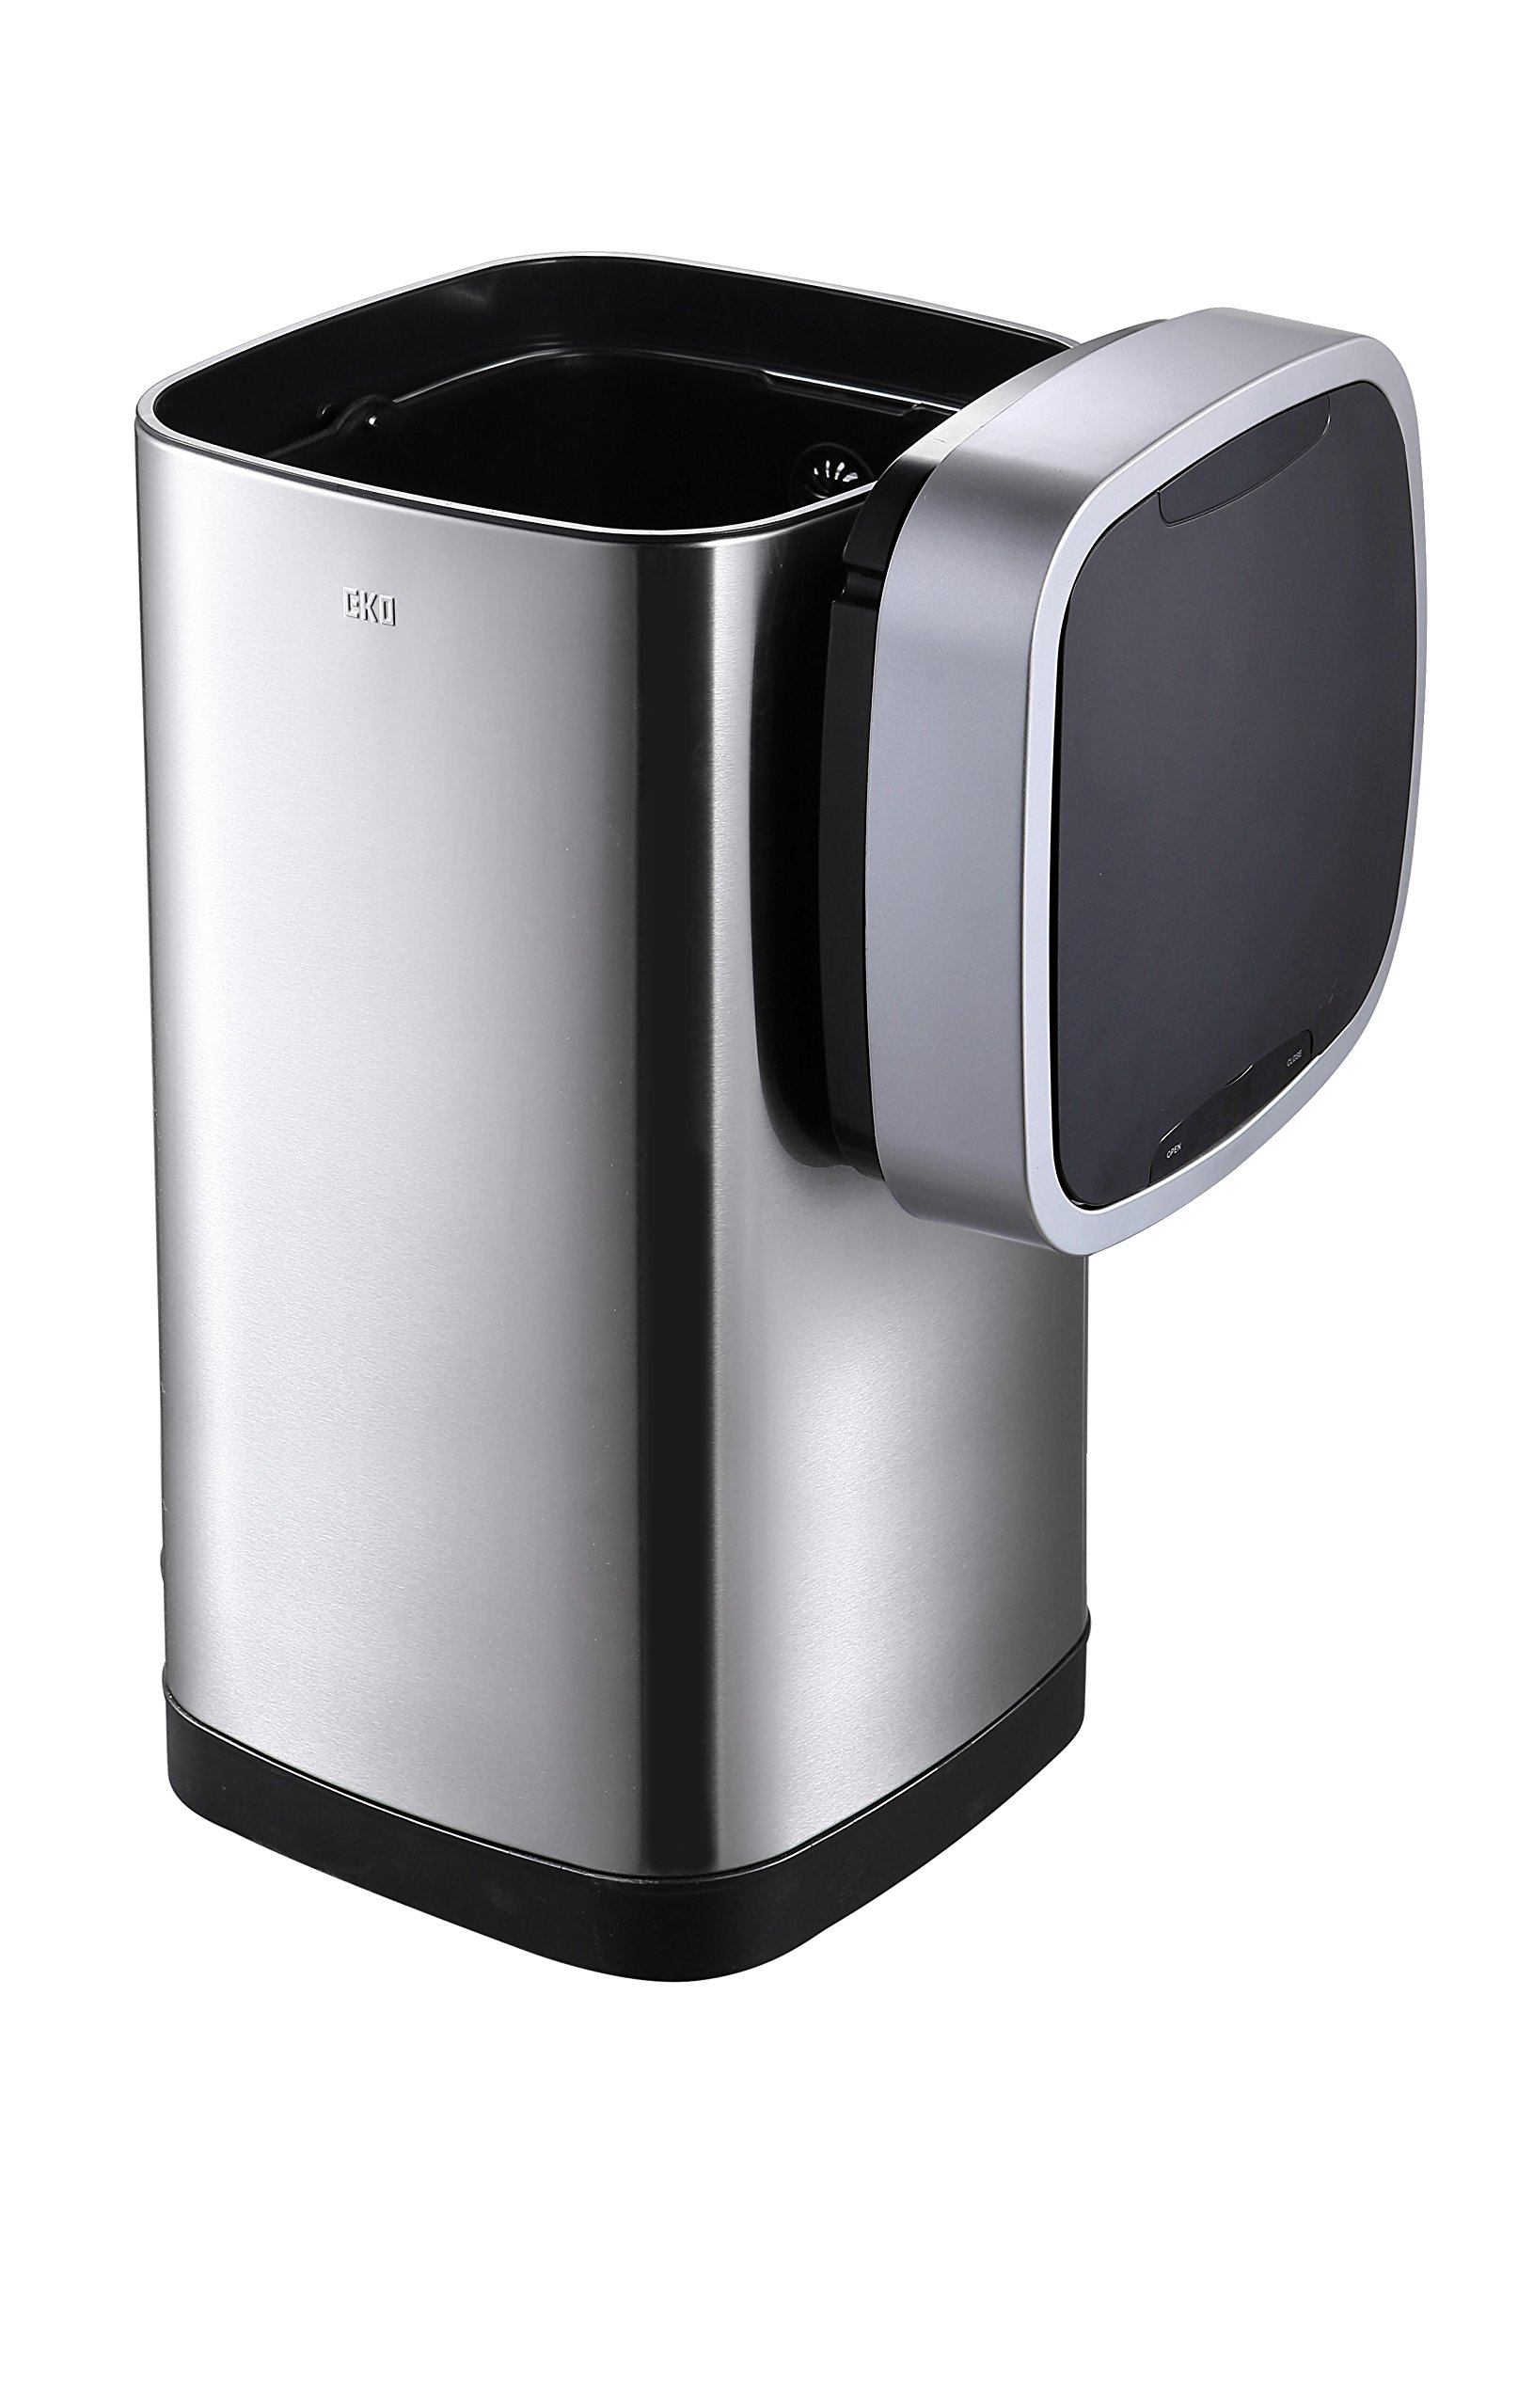 EKO 50-Liter Stainless Steel Metal Indoor Touchless Trash Can with Lid